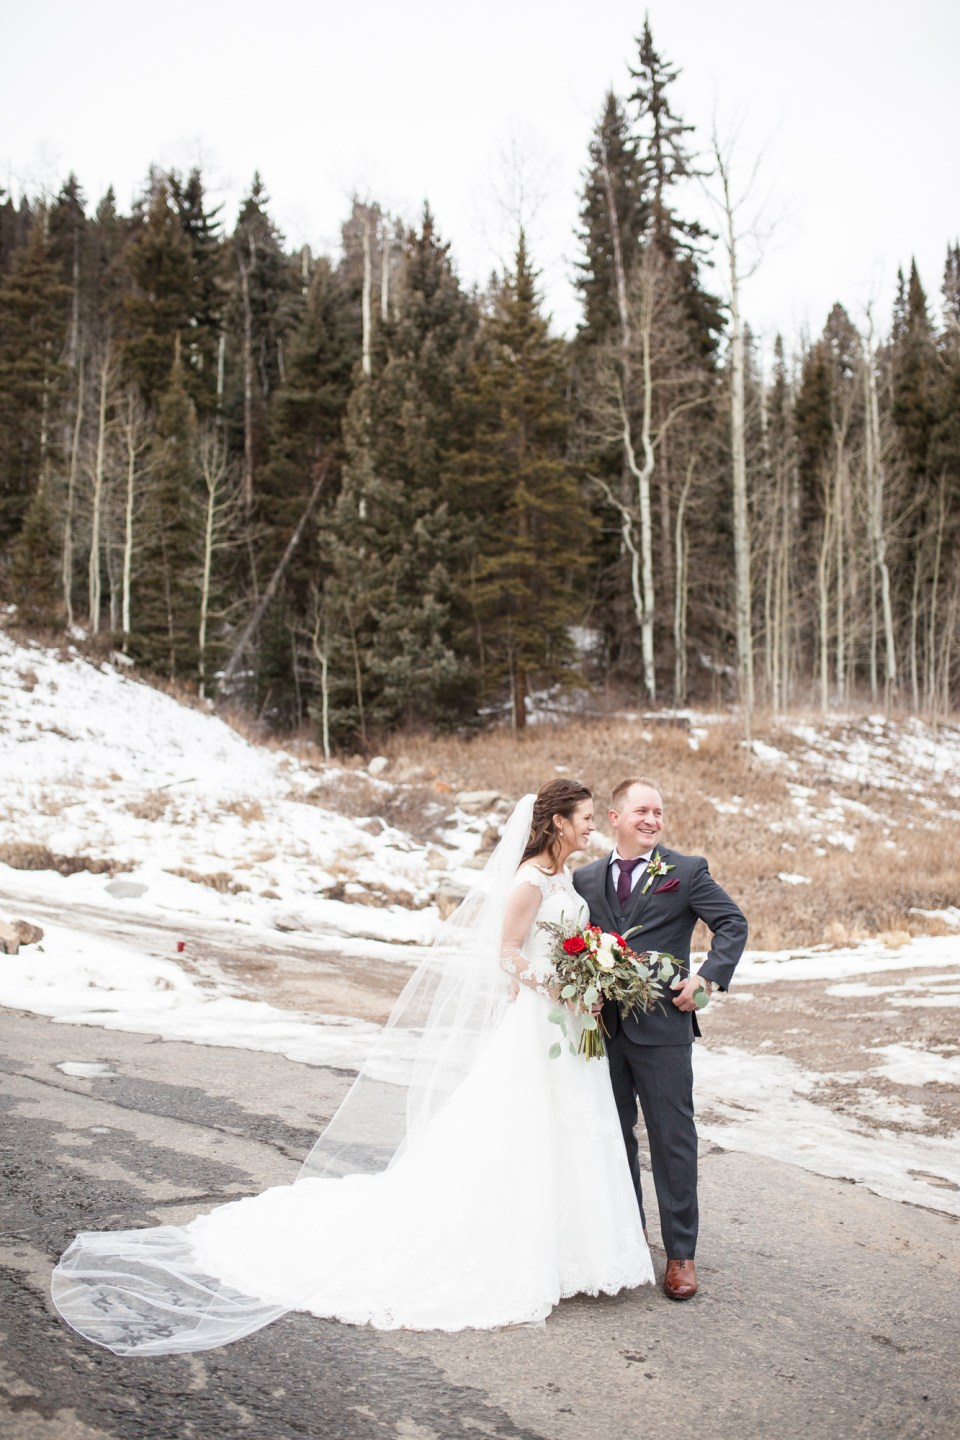 Durango, Colorado Winter Wedding ideas bride and groom in the snow